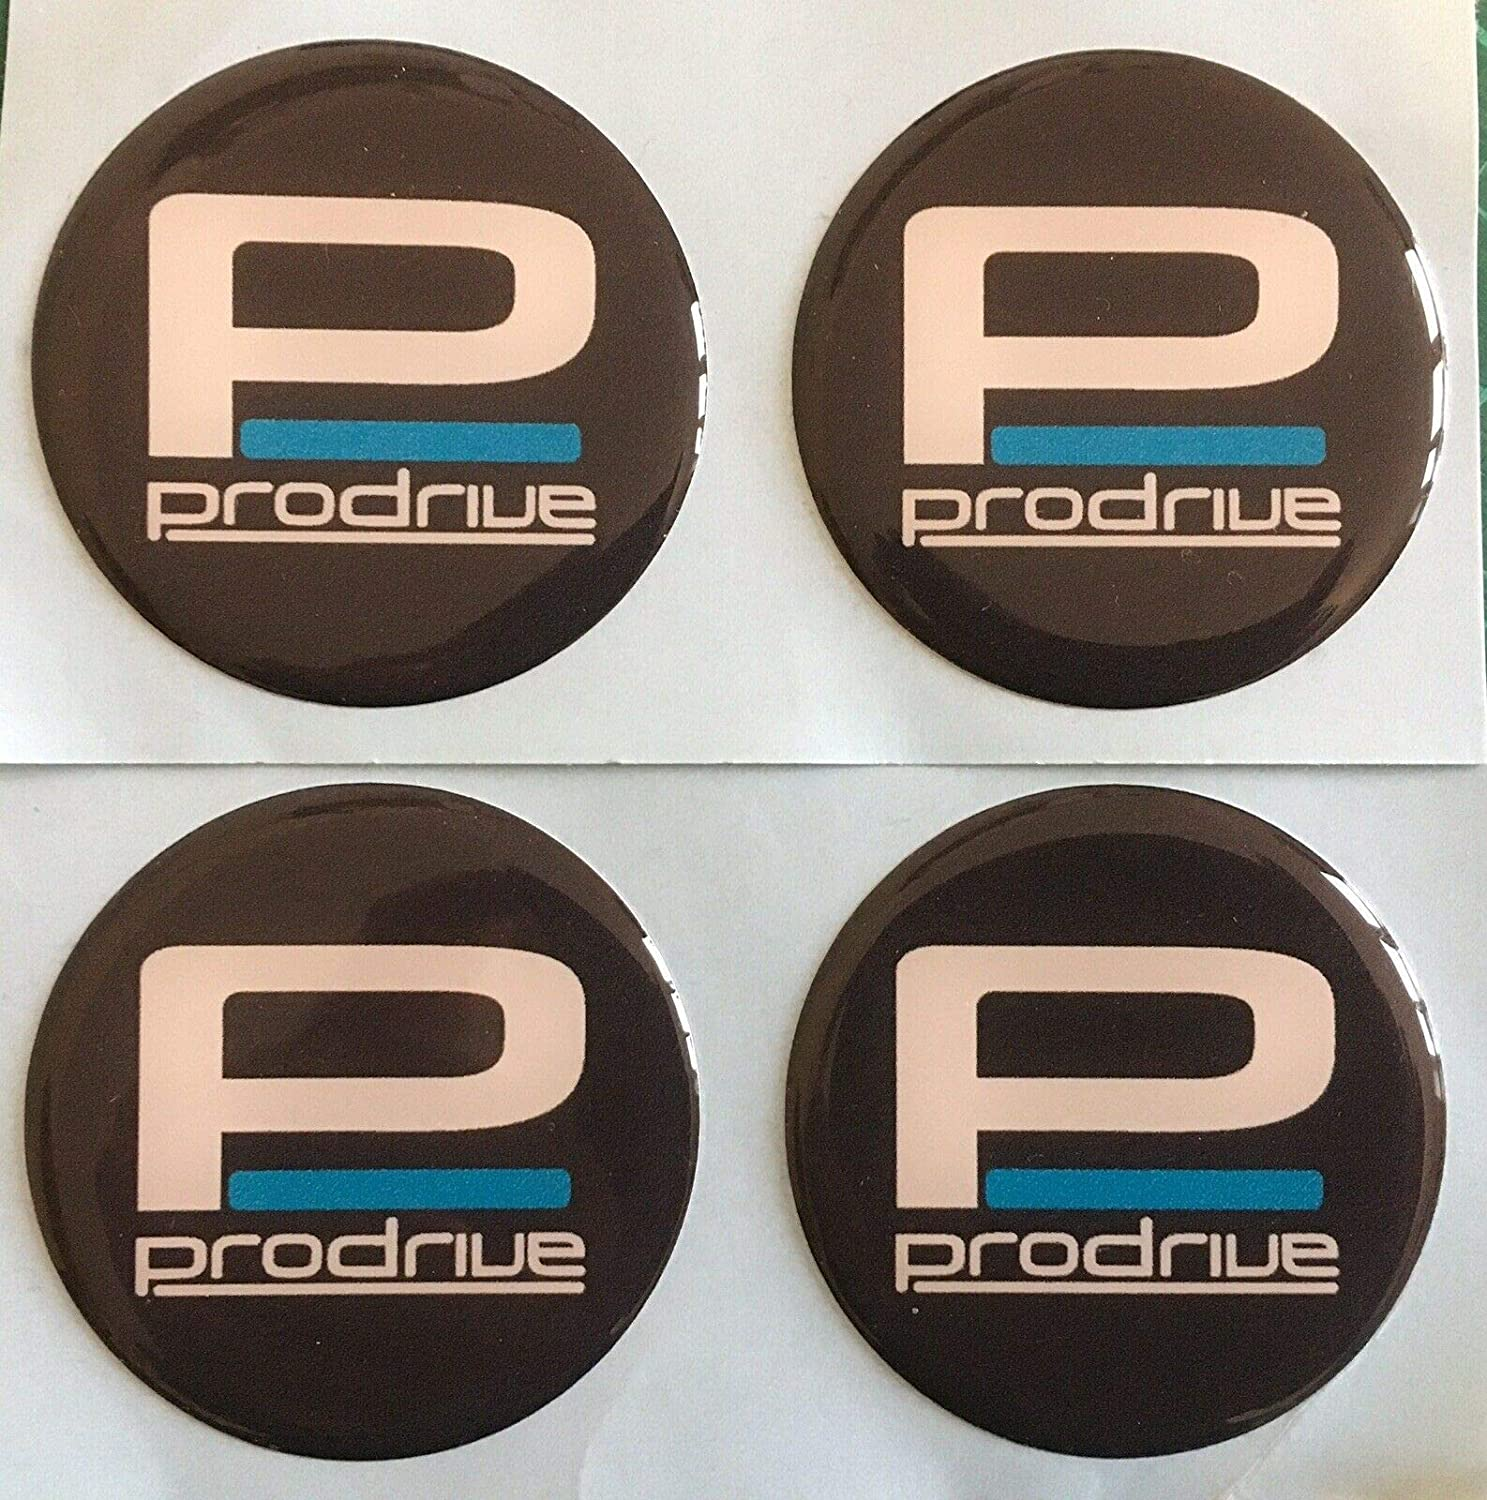 SCOOBY DESIGNS ALLOY WHEEL PFF7 PRODRIVE DOMED RESIN CENTRE CAP STICKERS X4 SUBA BLACK WHITE 60MM